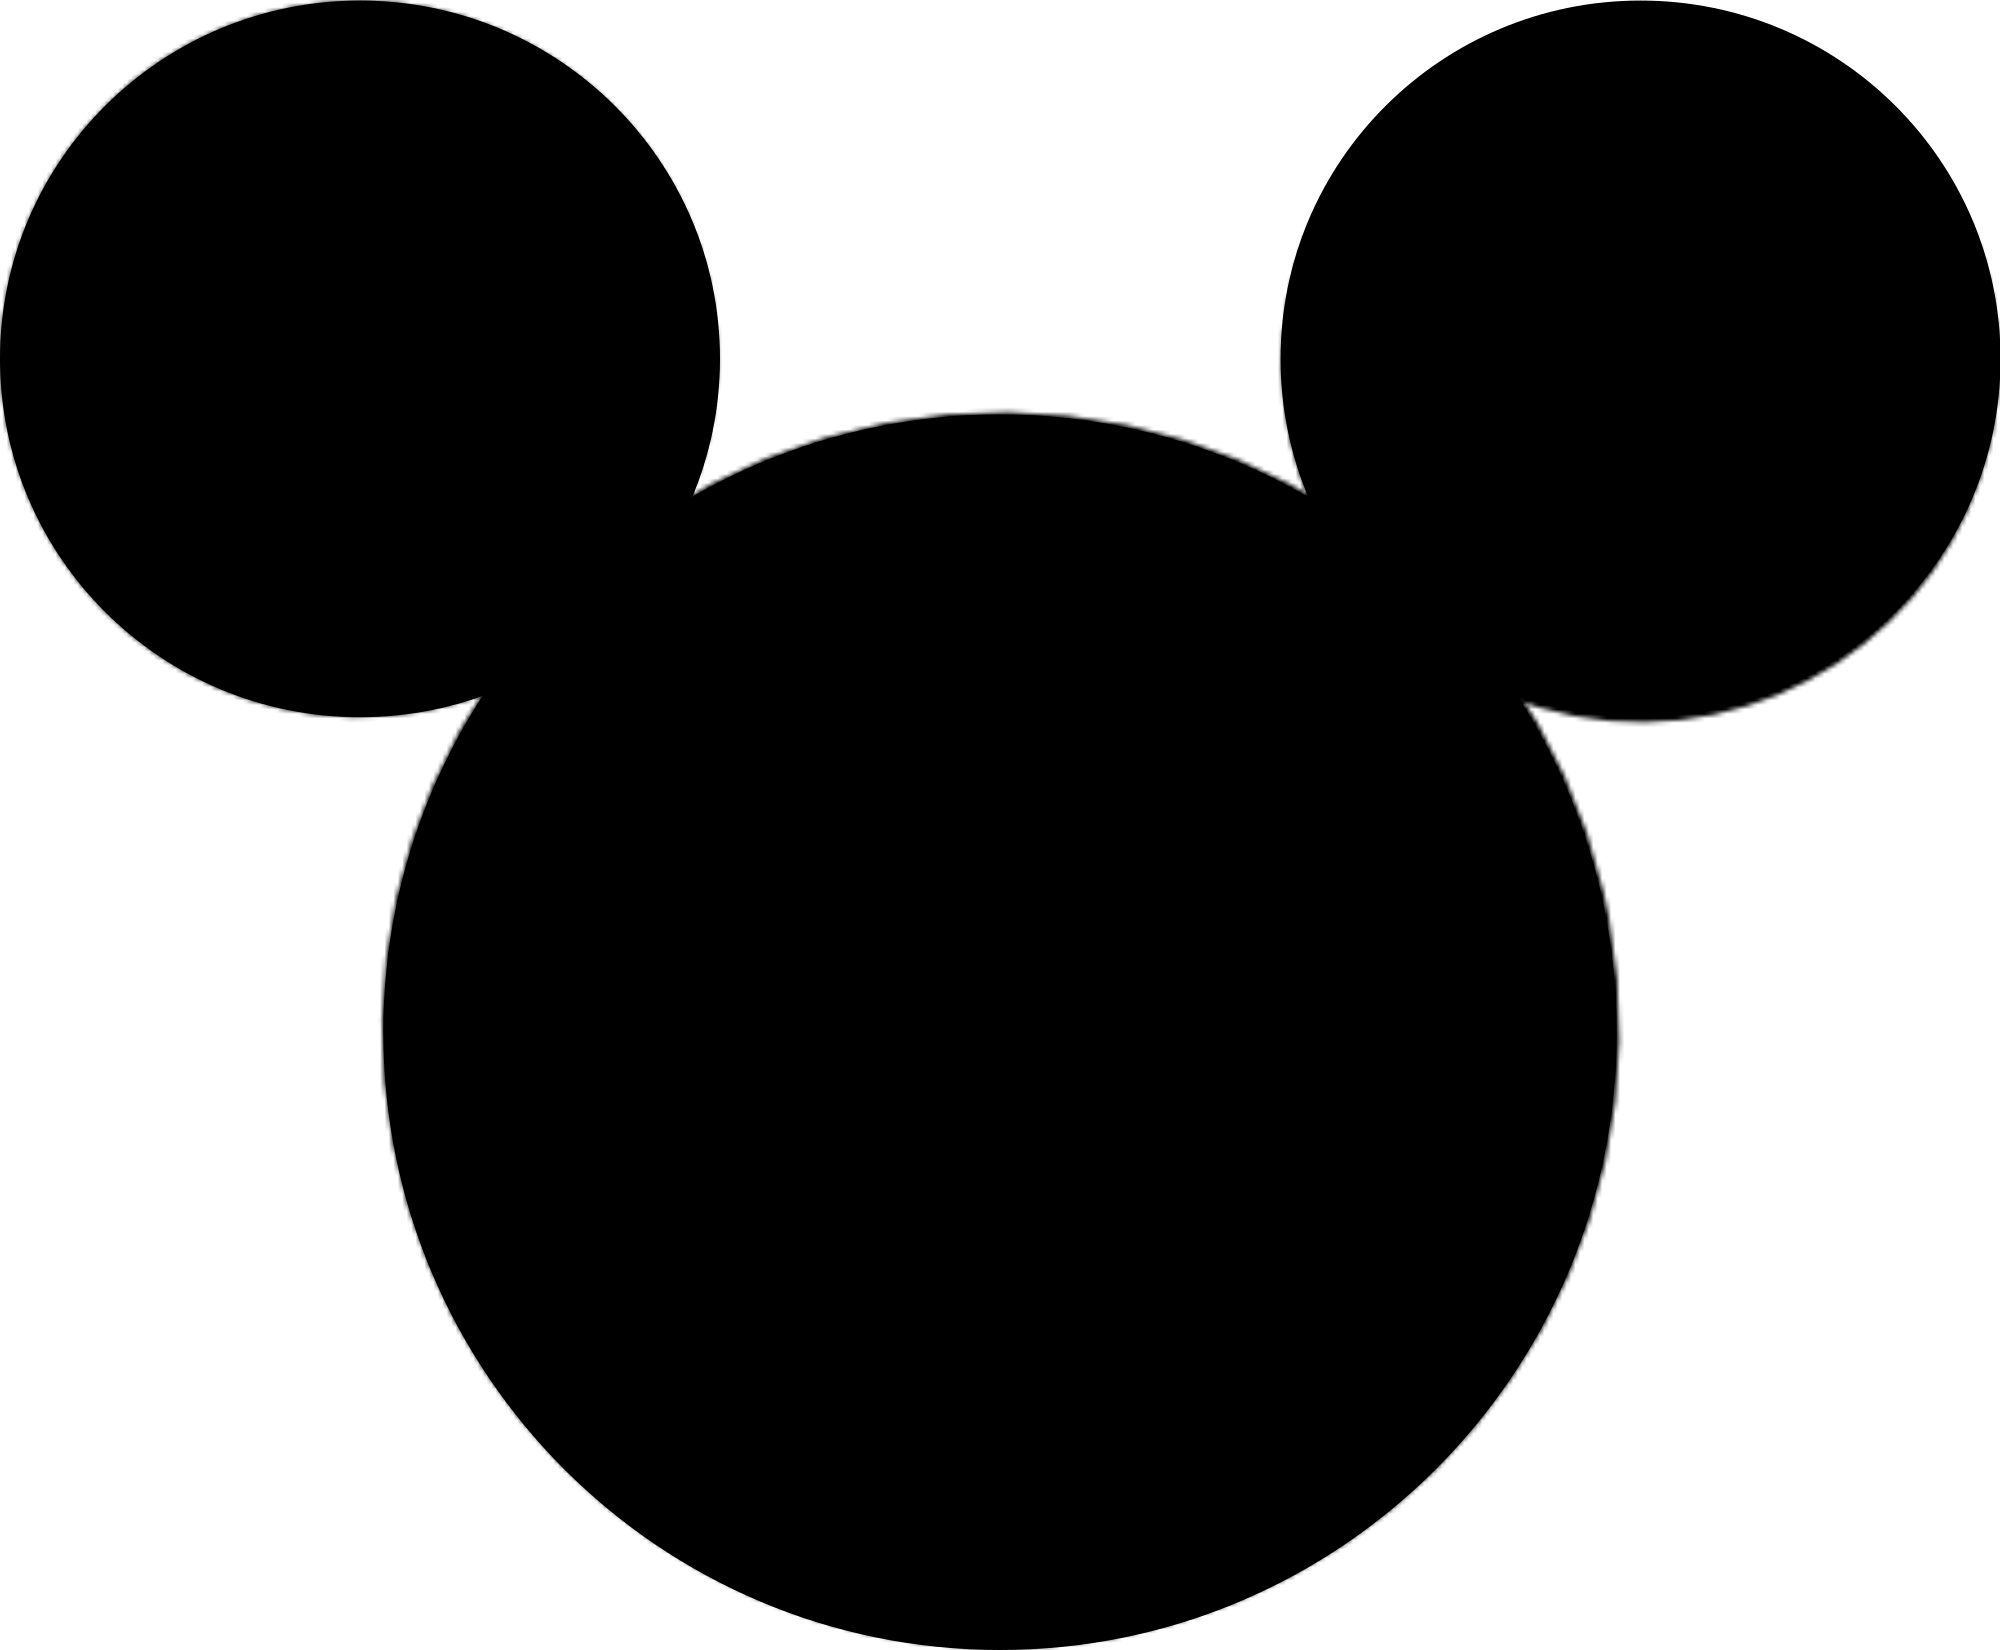 Great Mickey Mouse Logo Download Free Clipart With.